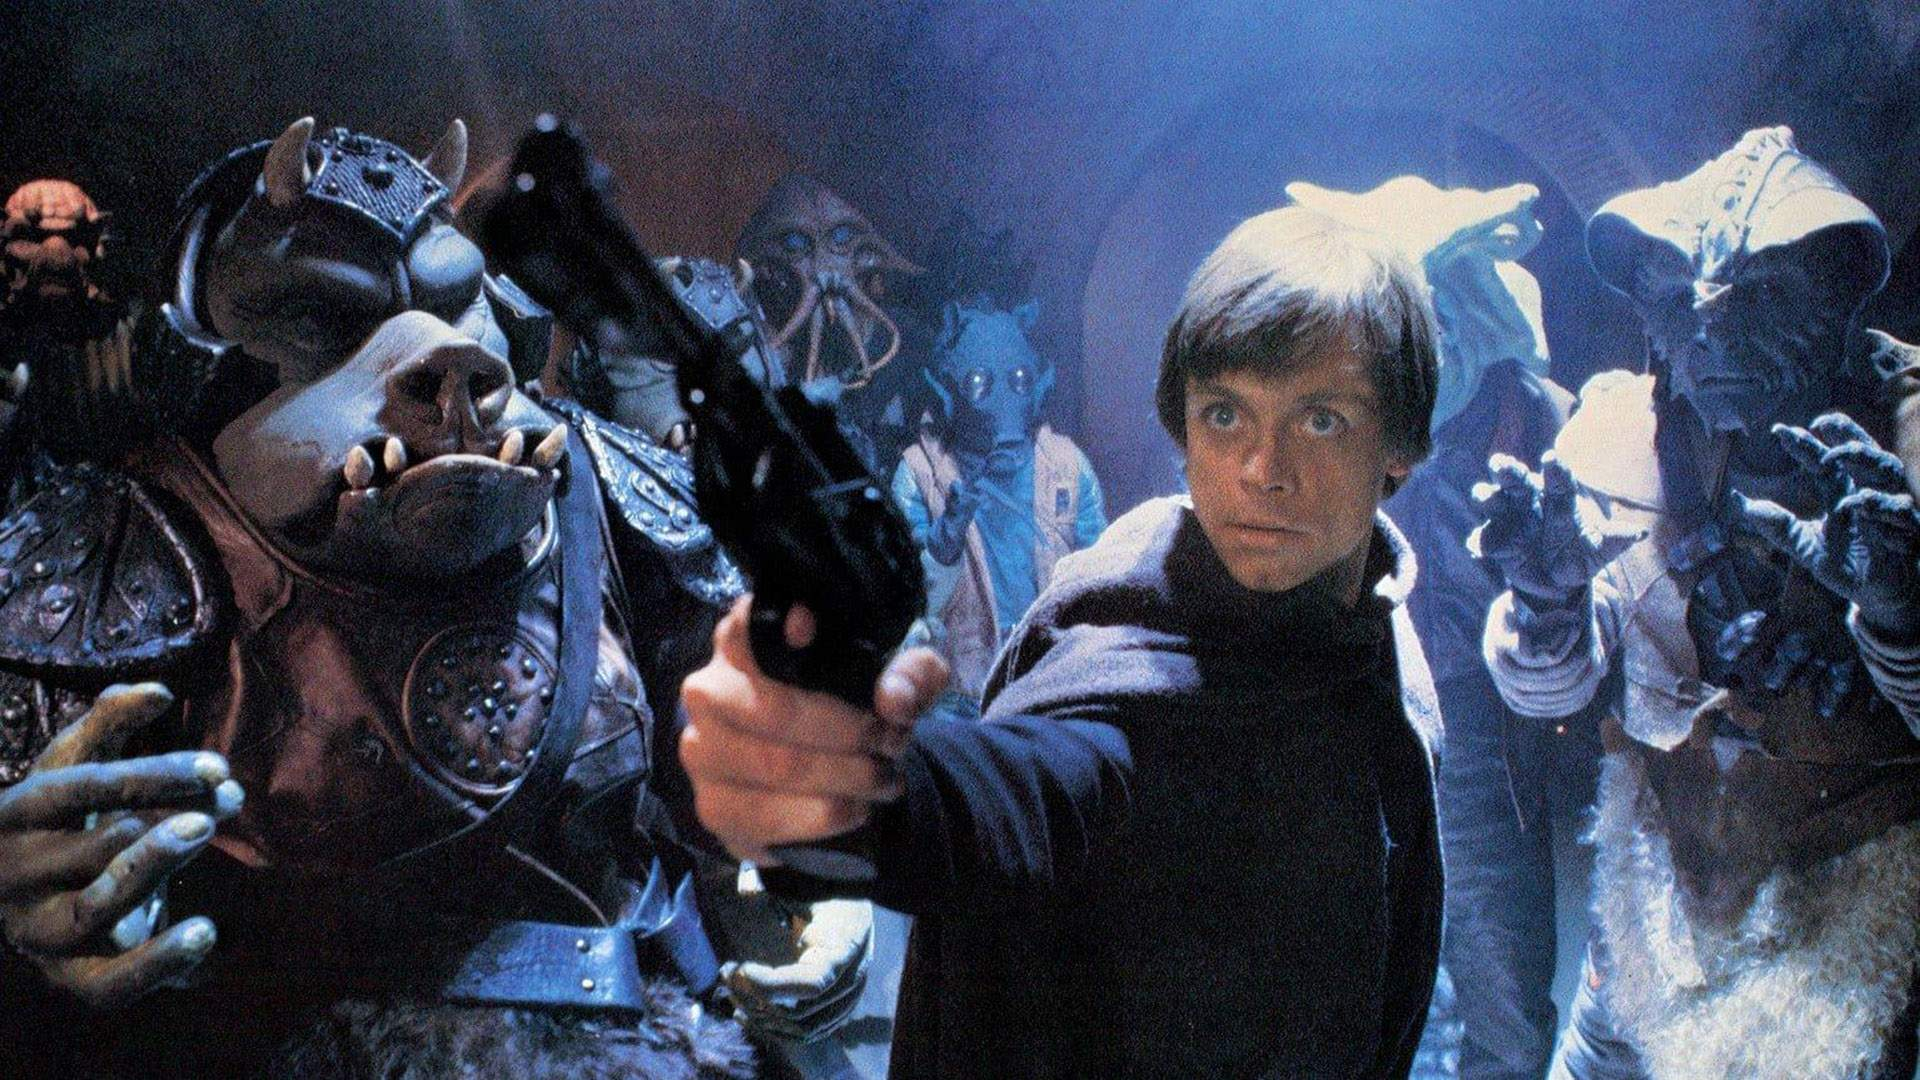 'Return of the Jedi' Is the Latest 'Star Wars' Film Returning to the Big Screen with a Live Score